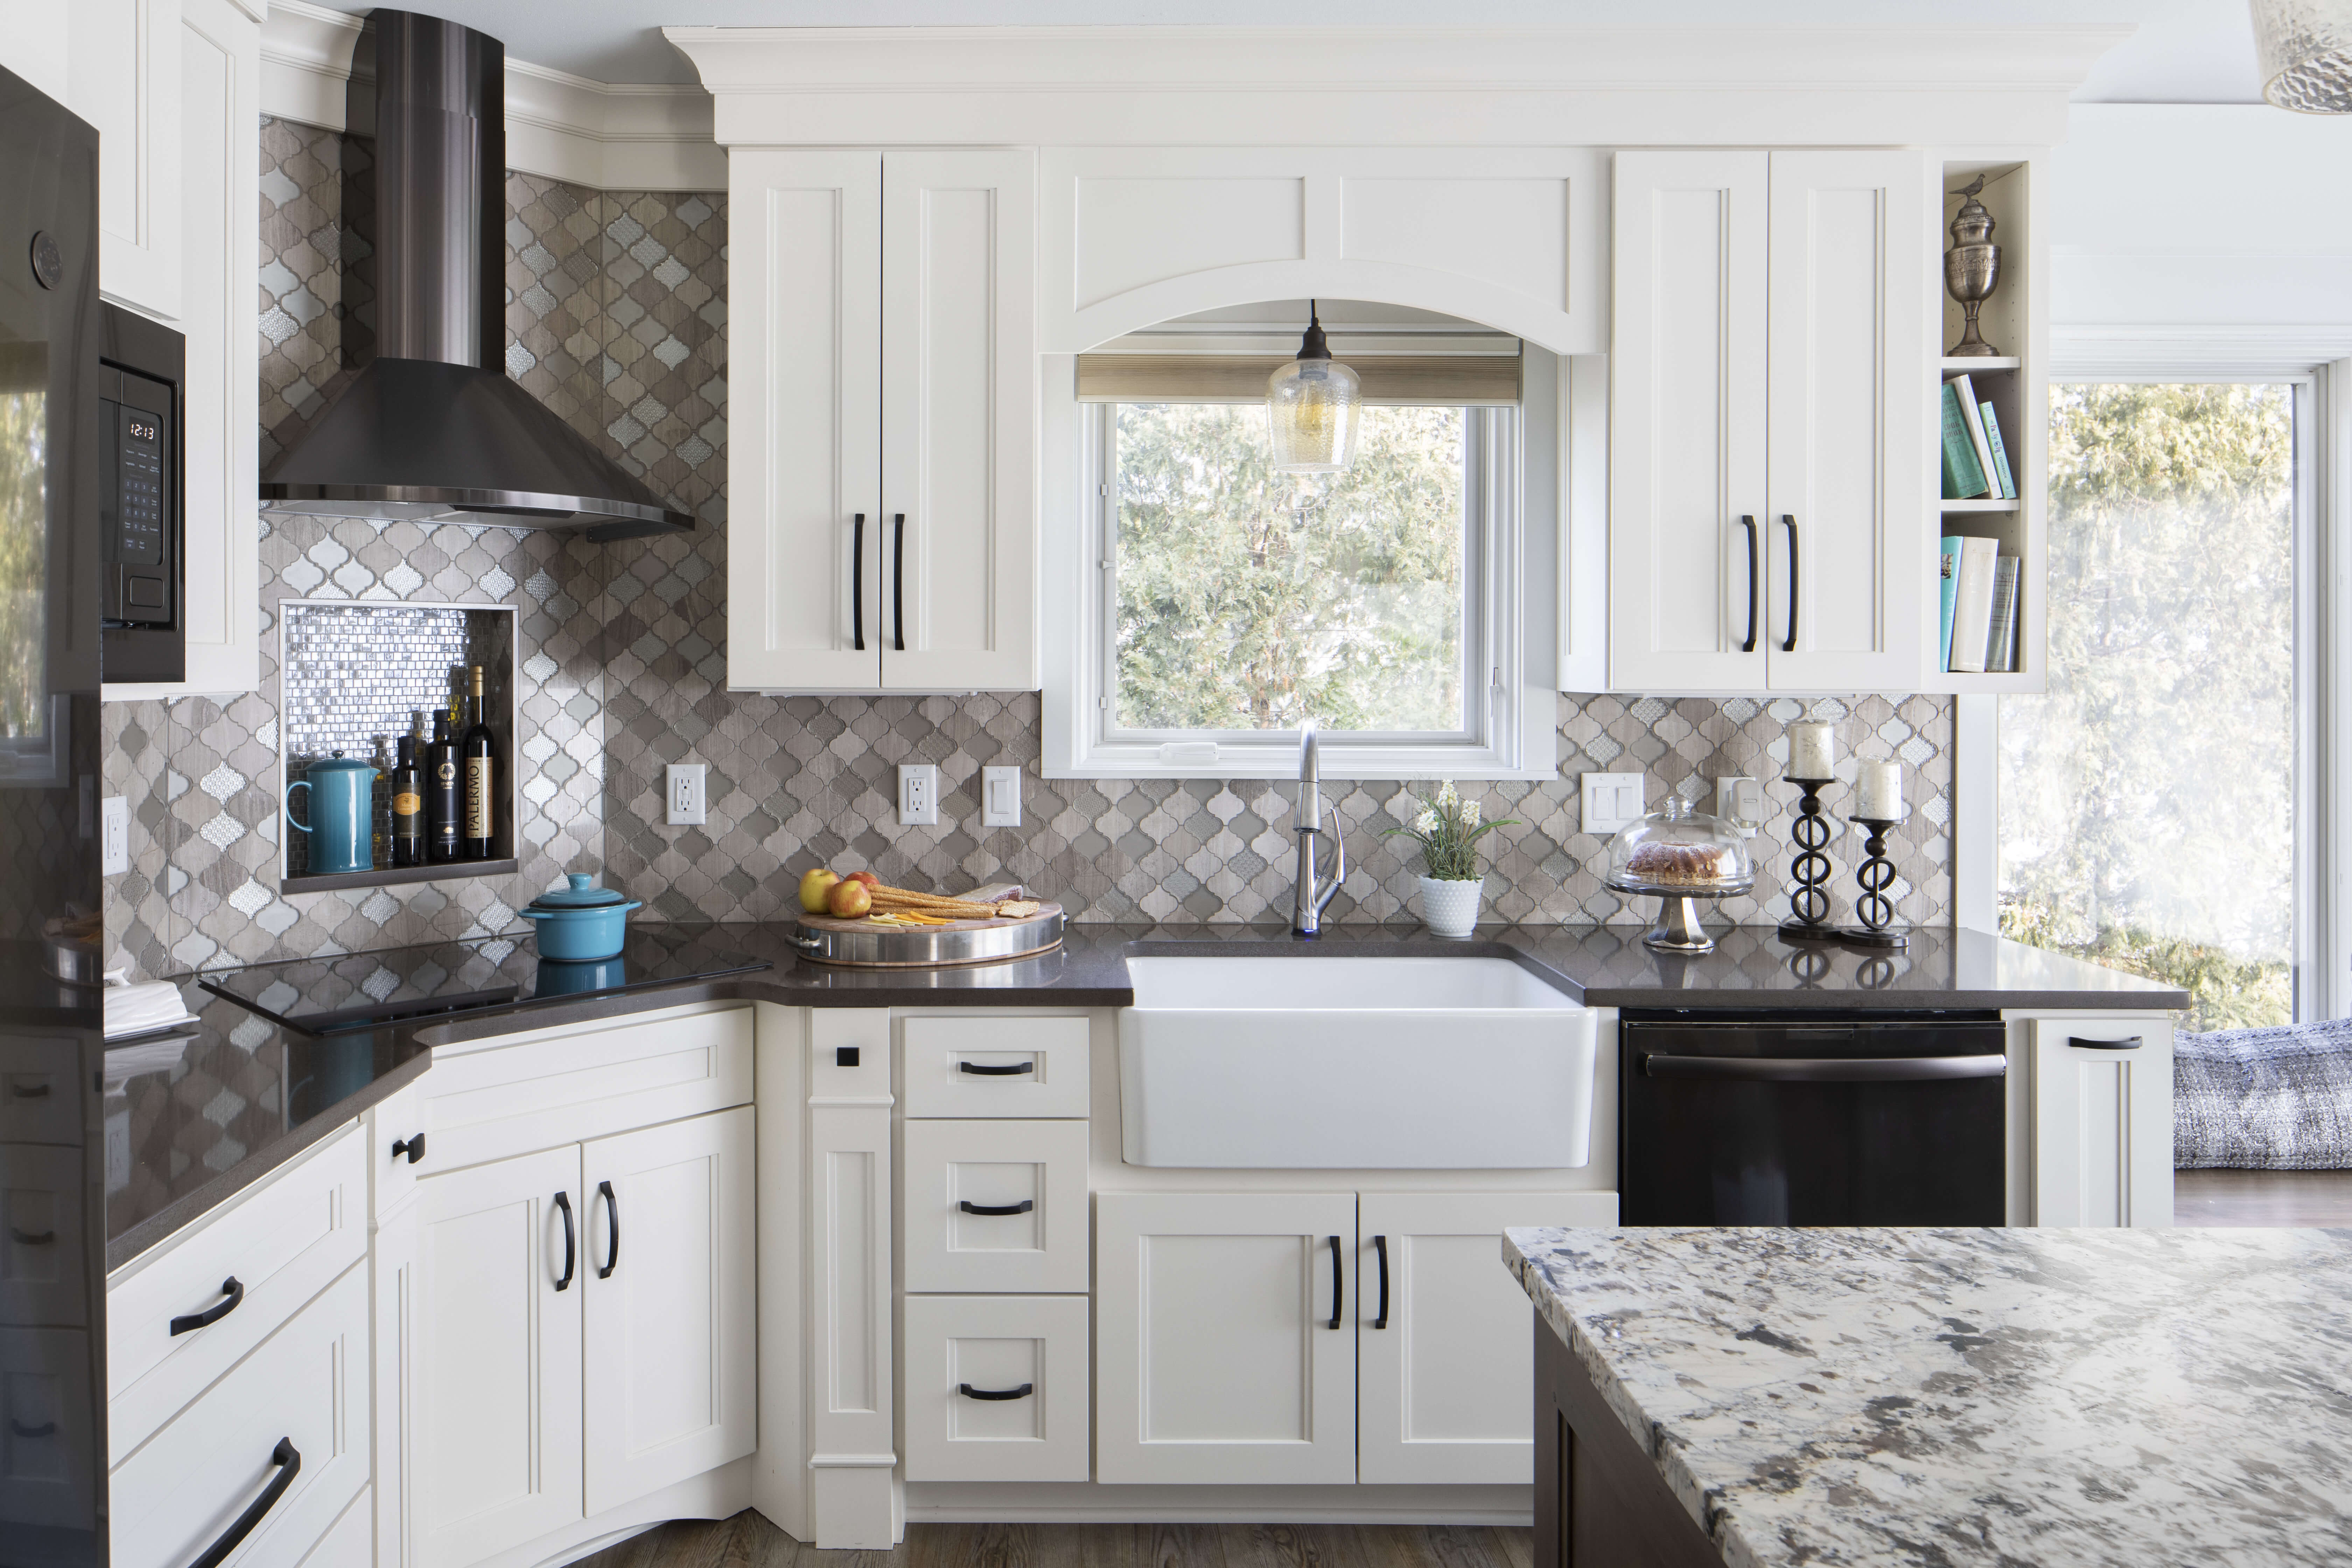 A transitional kitchen with white painted cabinets, black stainless steel appliances and black countertops.